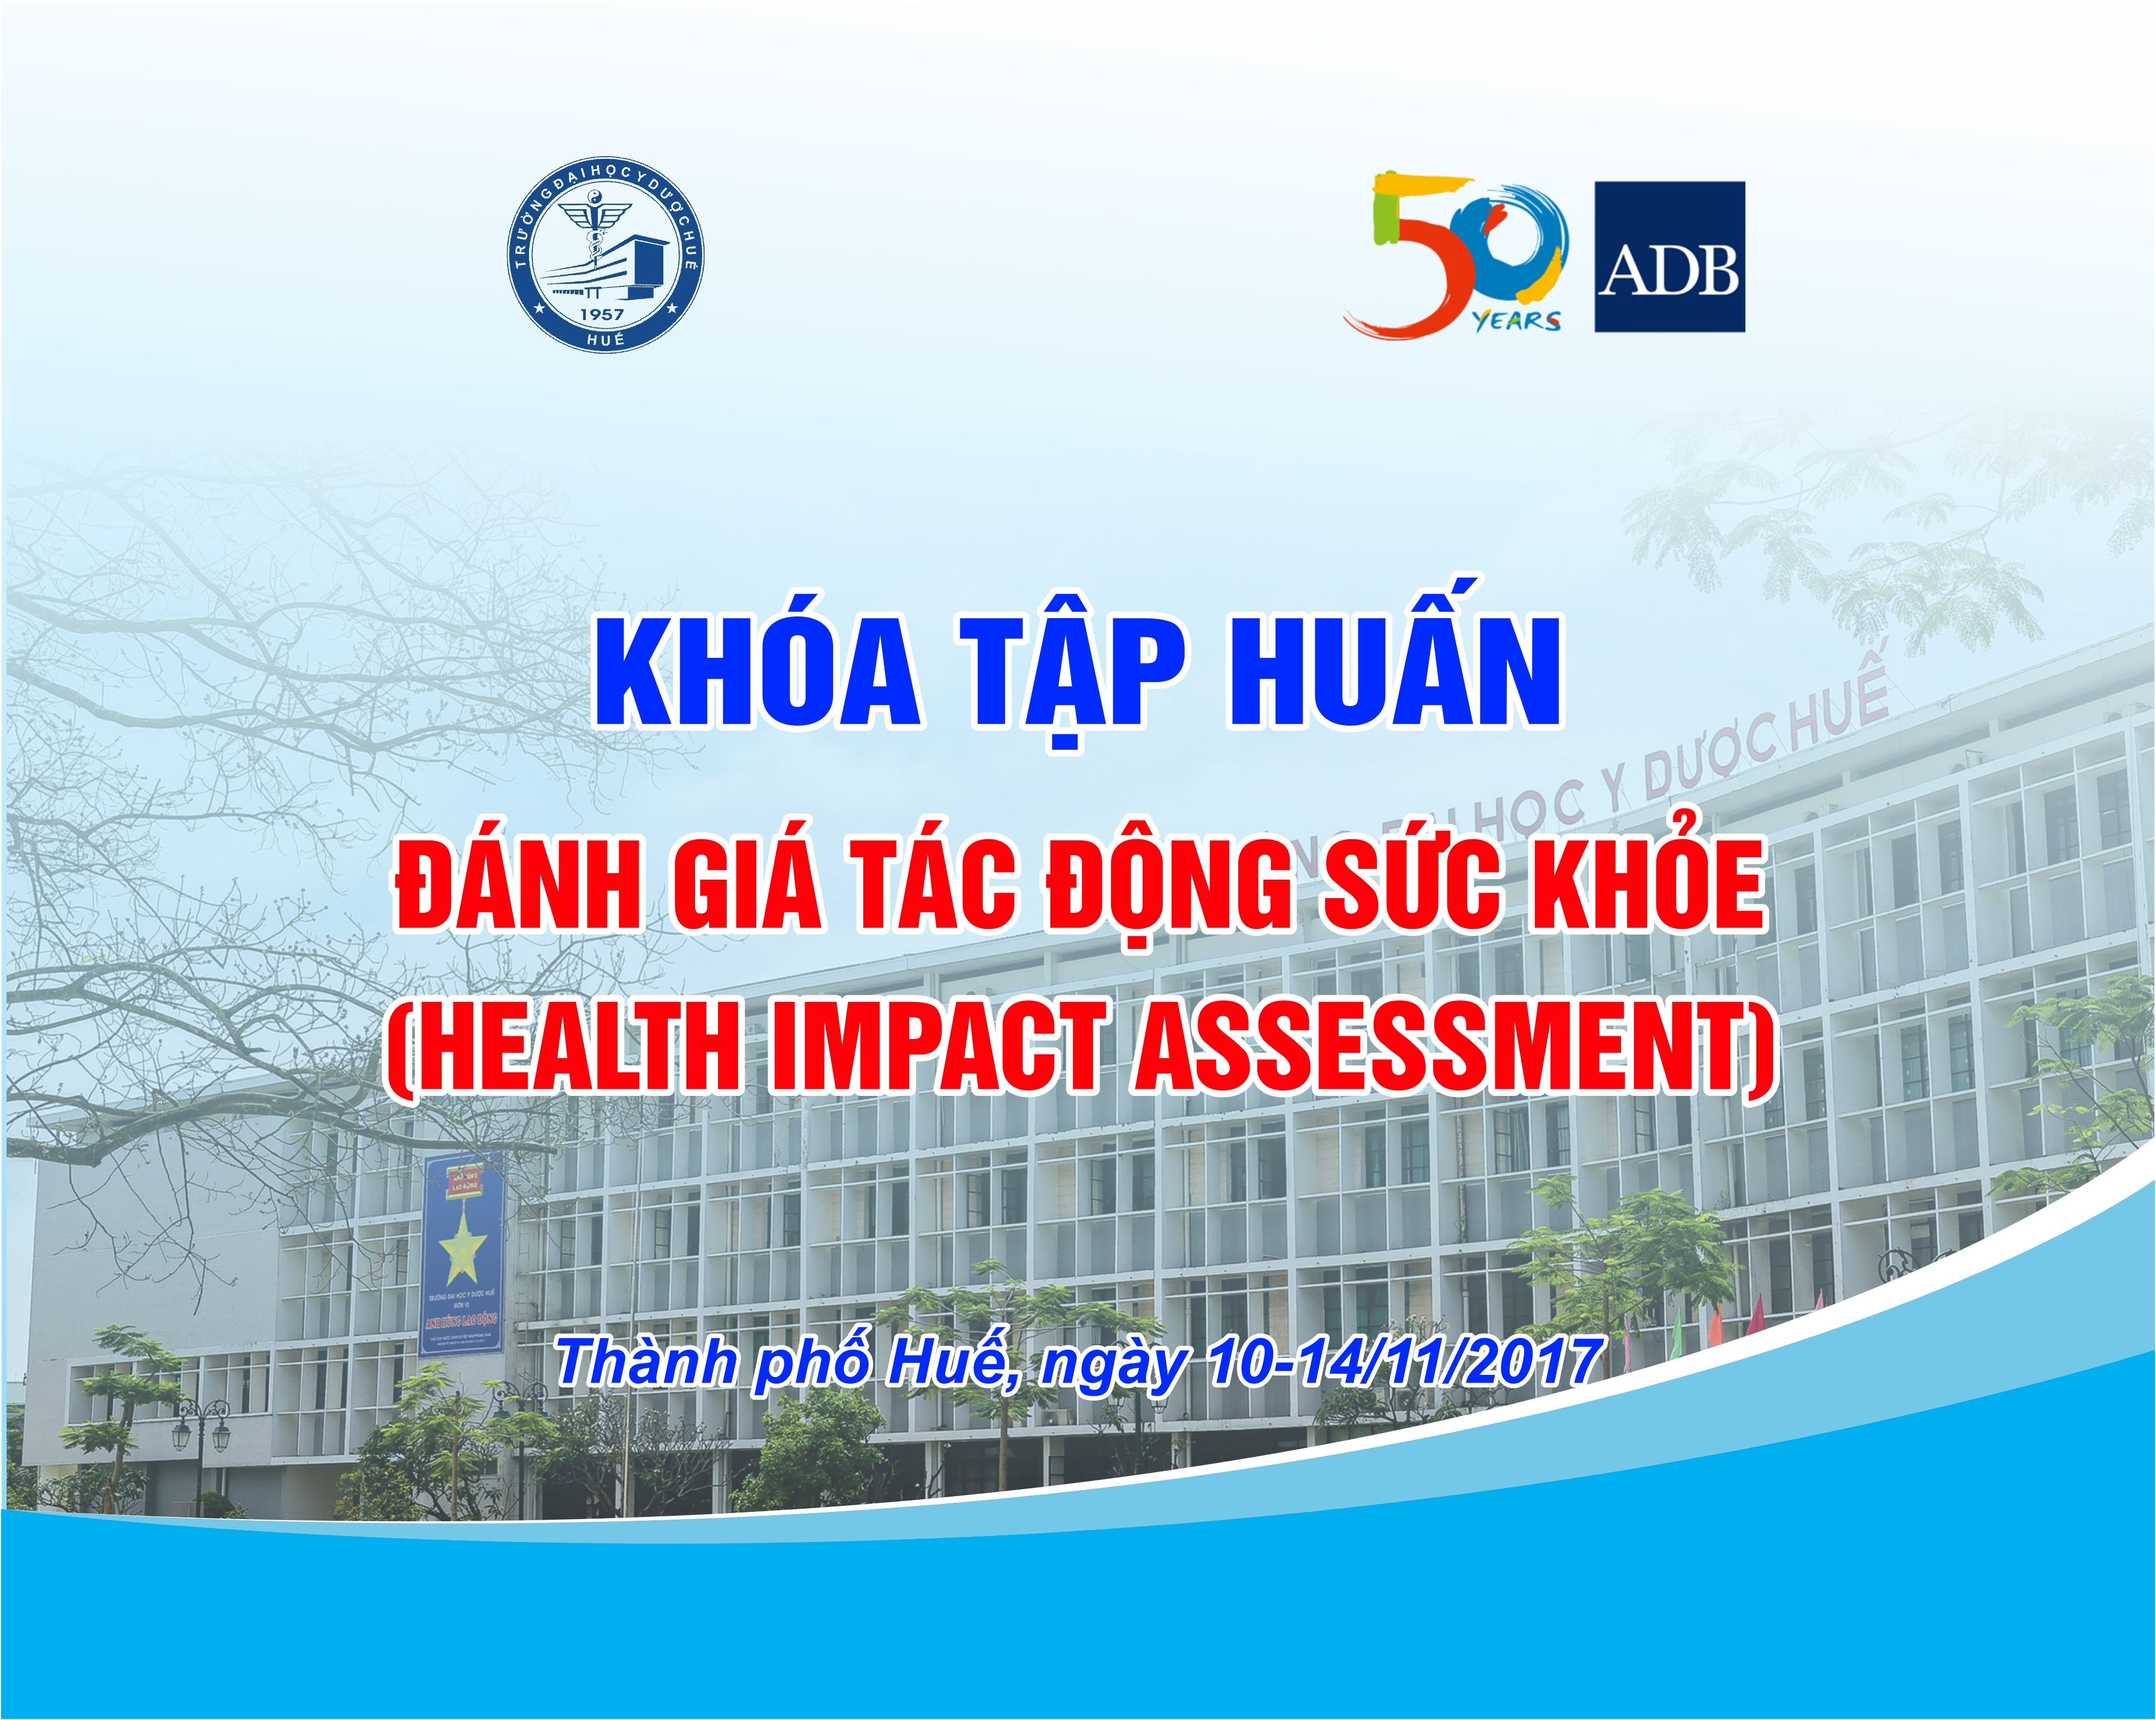 "THE TRAINING COURSE ""HEALTH IMPACT ASSESSMENT"" IN HUE"